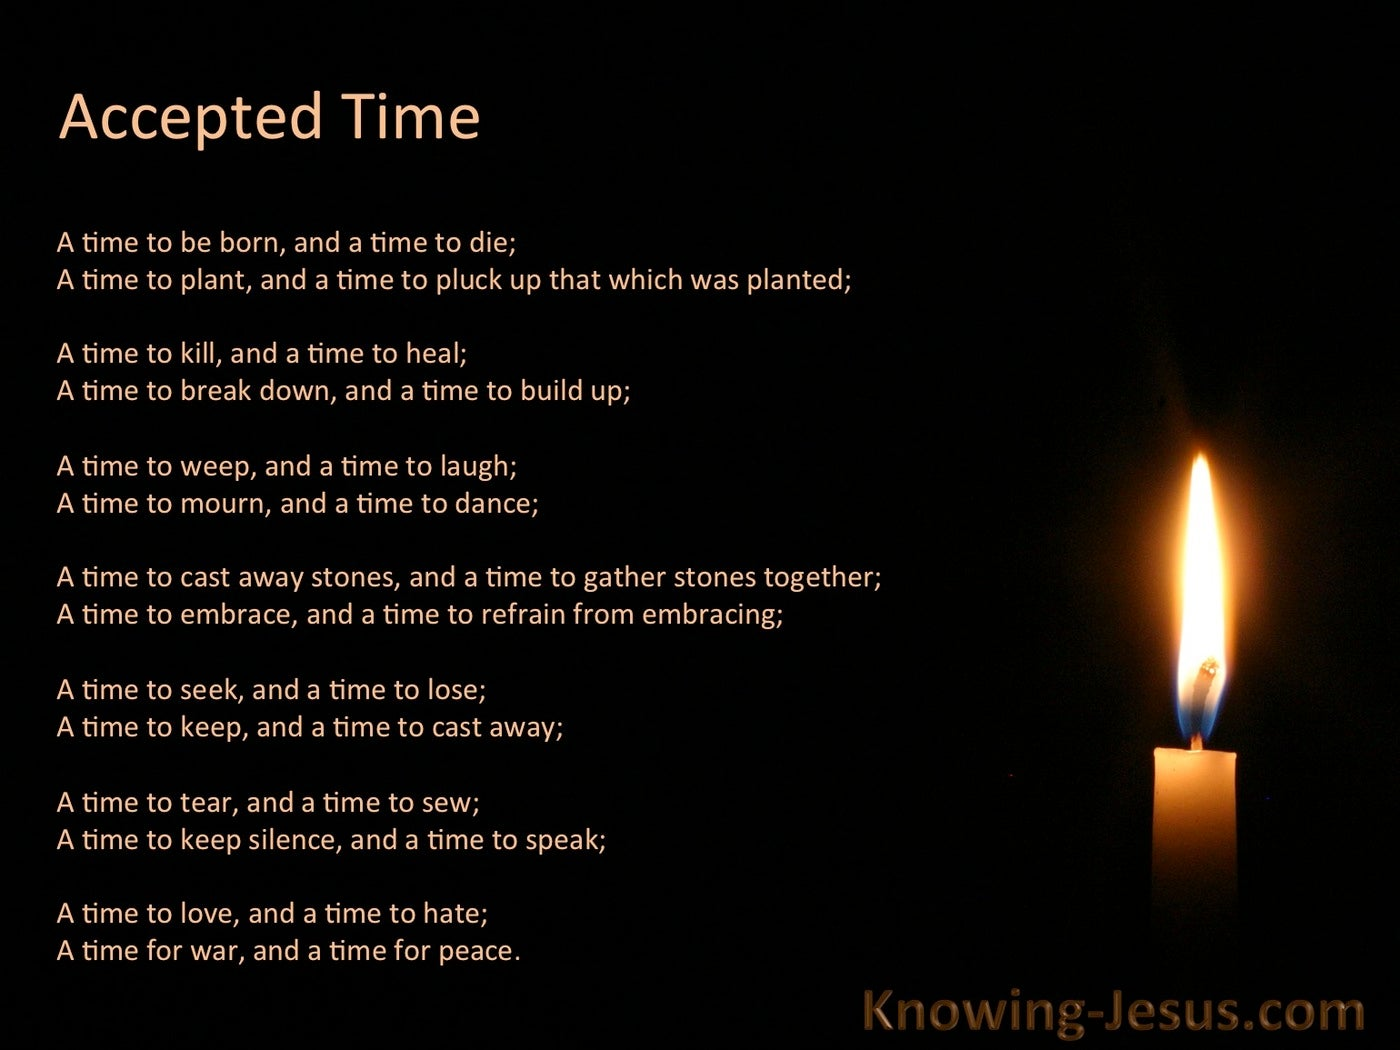 Ecclesiastes 3:2 Today The Accepted Time (devotional)04:01 (black)